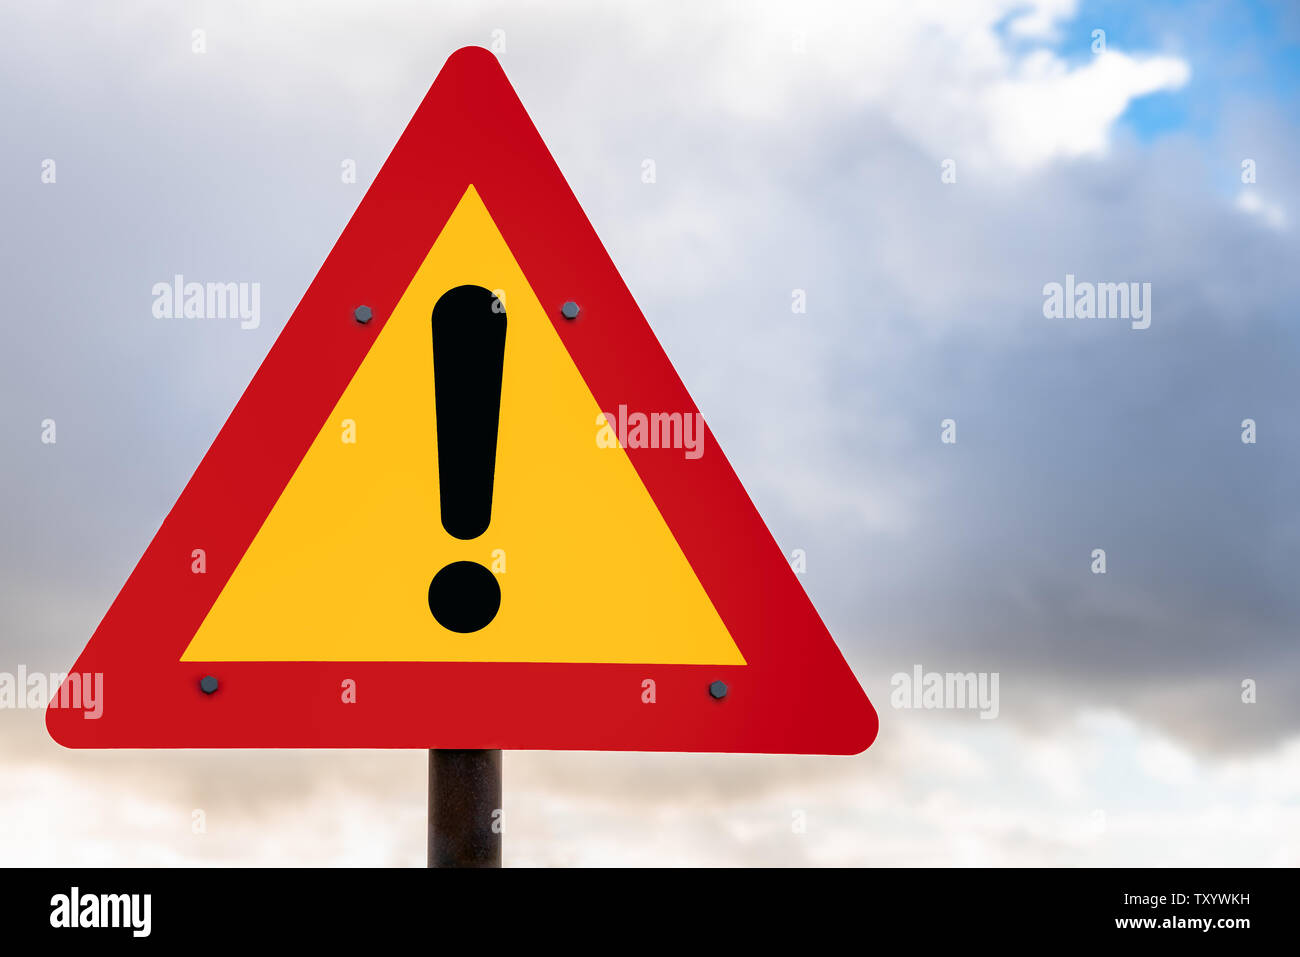 Hazard ahead warning road sign against cloudy sky - Stock Image